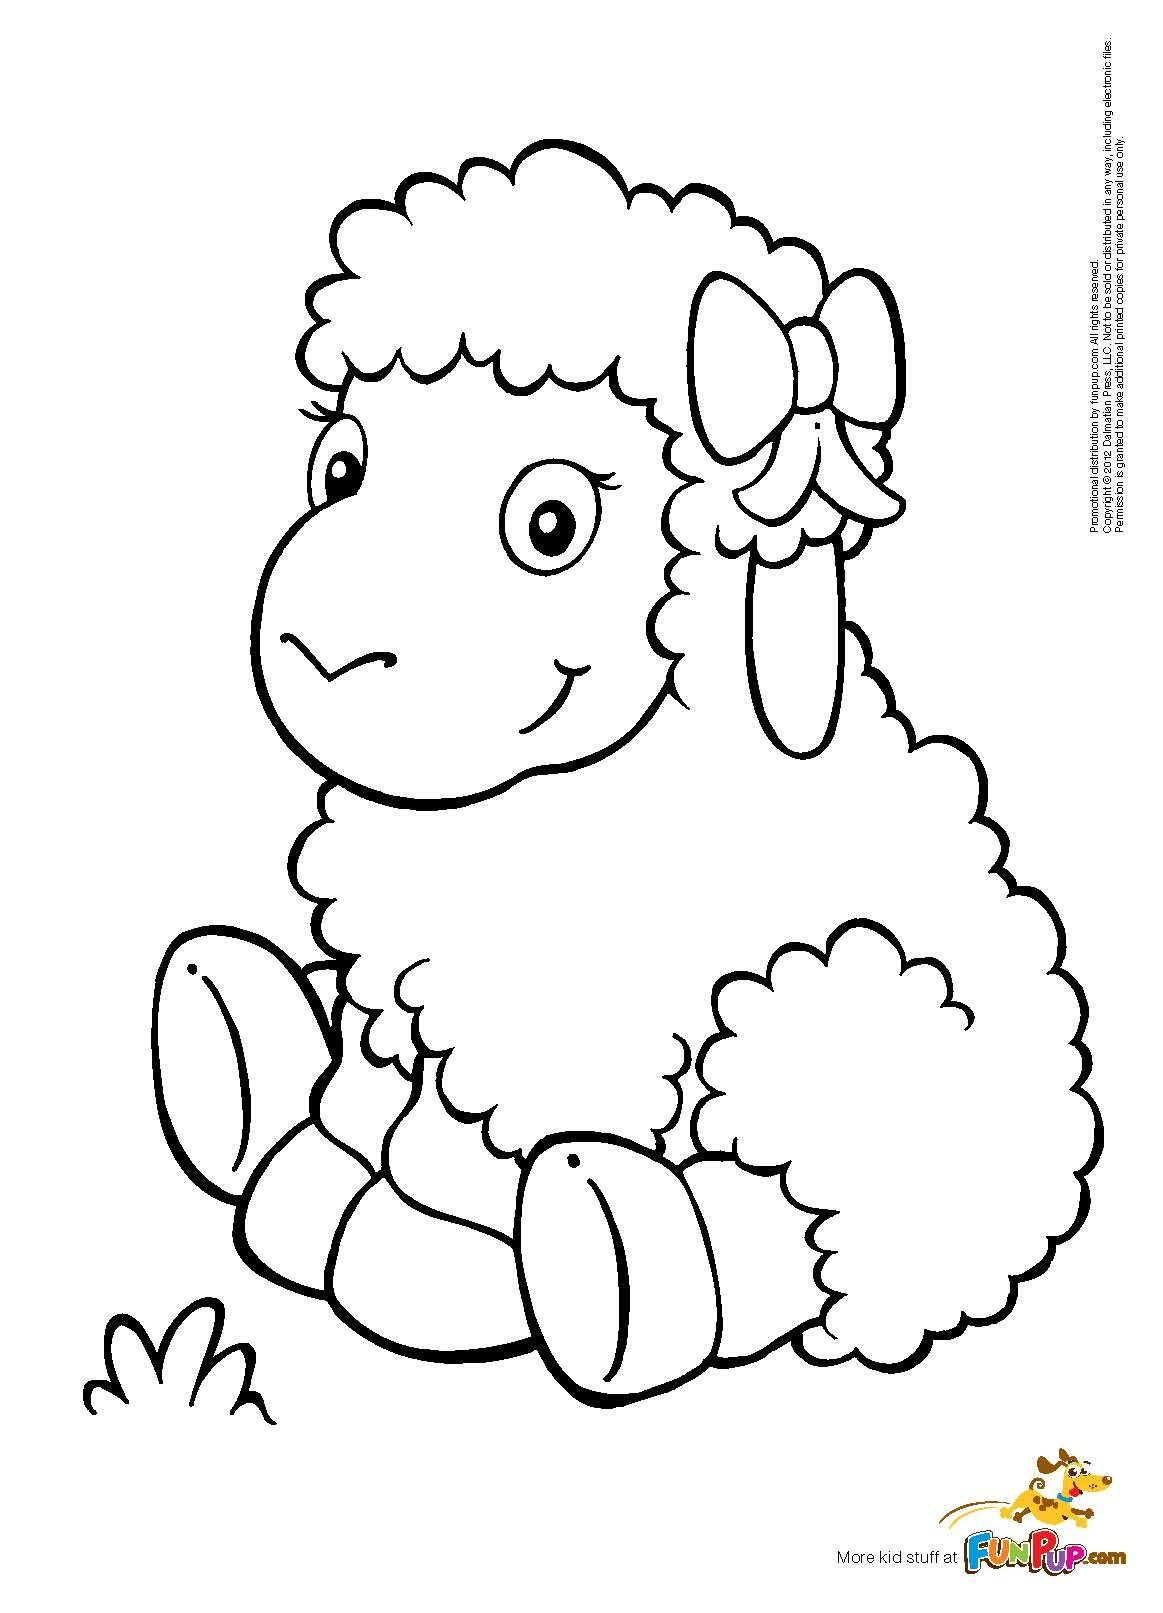 Baby Lamb Coloring Pages - Master Coloring Pages